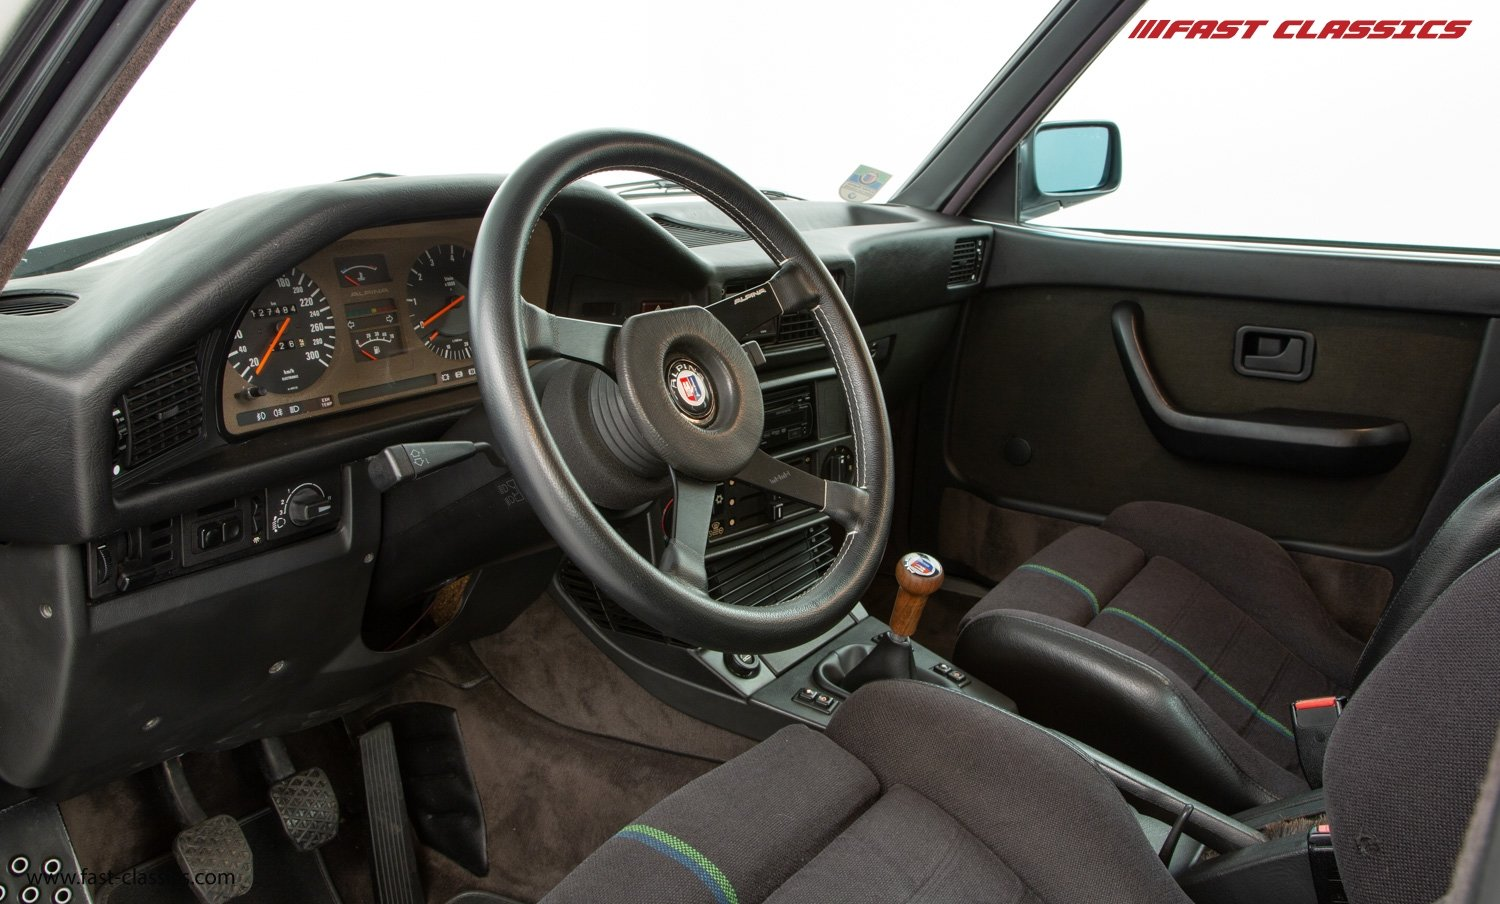 1986 ALPINA B7 TURBO/1 // 1 OF 42 HIGH POWER CATALYST CARS  For Sale (picture 12 of 24)